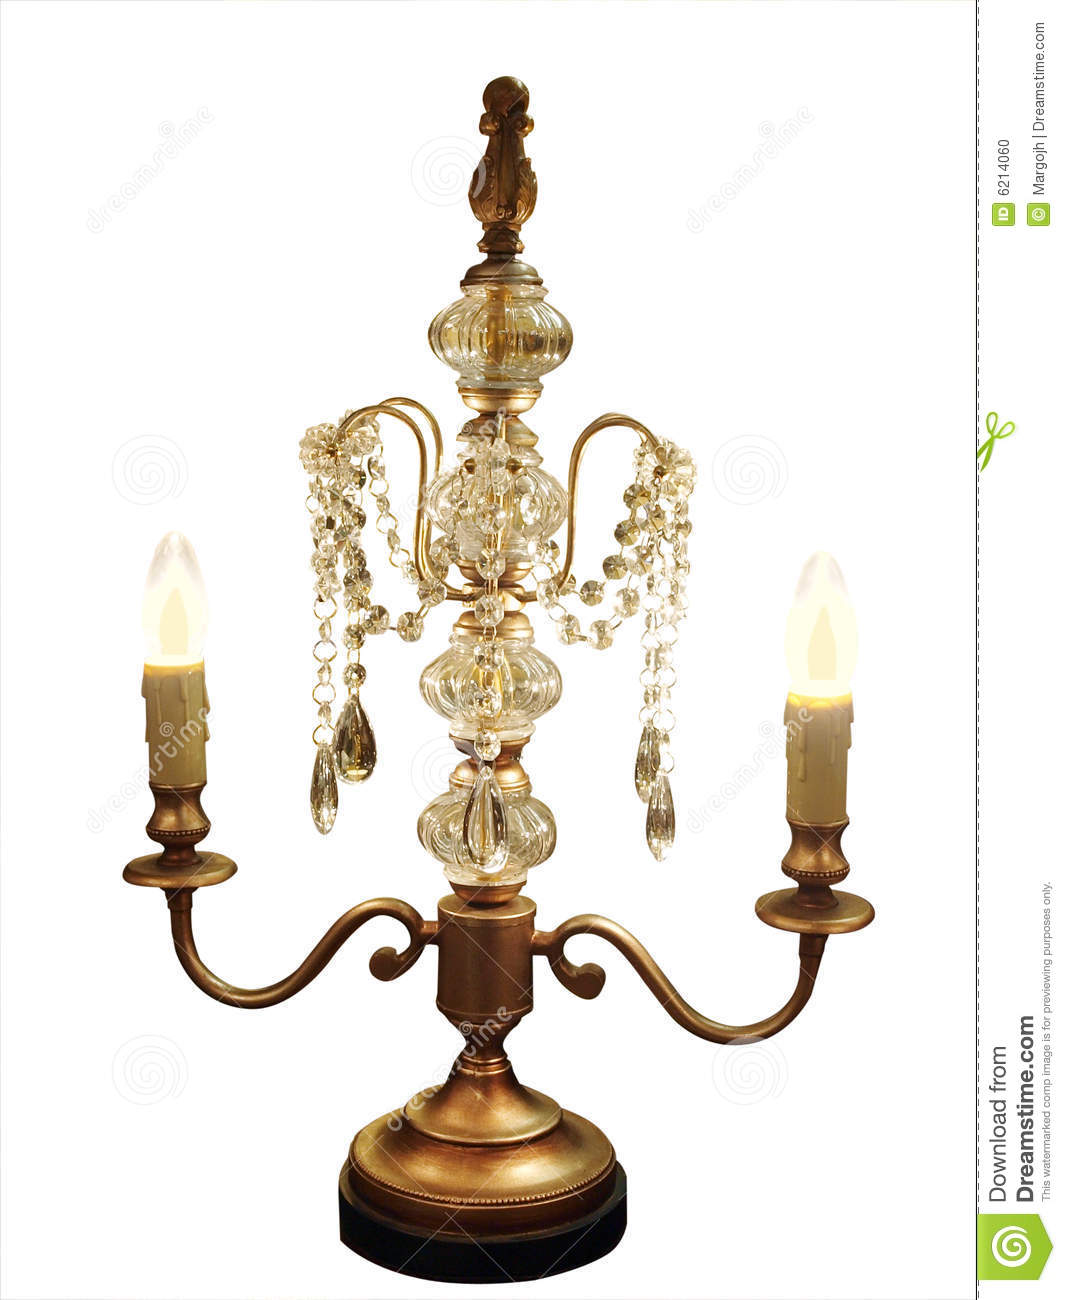 Ornate Table Lamp Chandelier Stock Photo Image 6214060